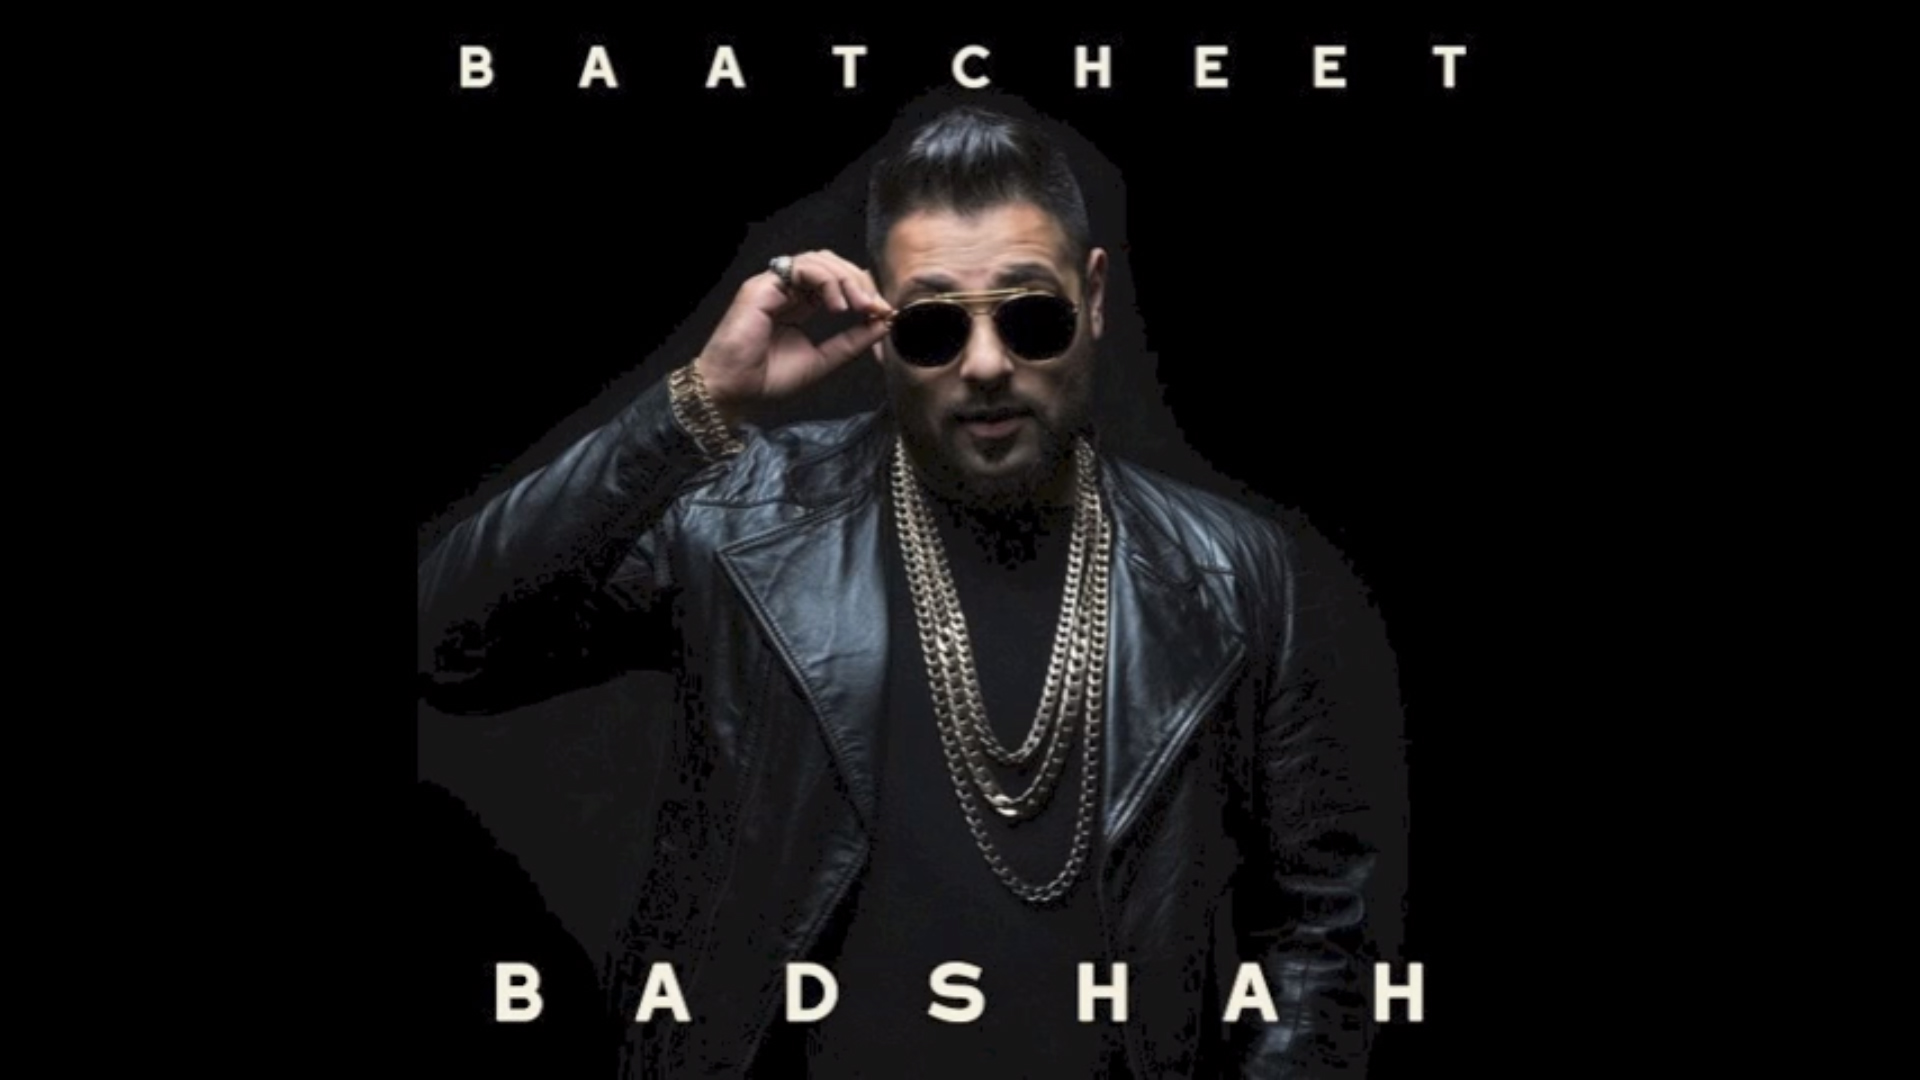 baatcheet-badshah-mouth-shut